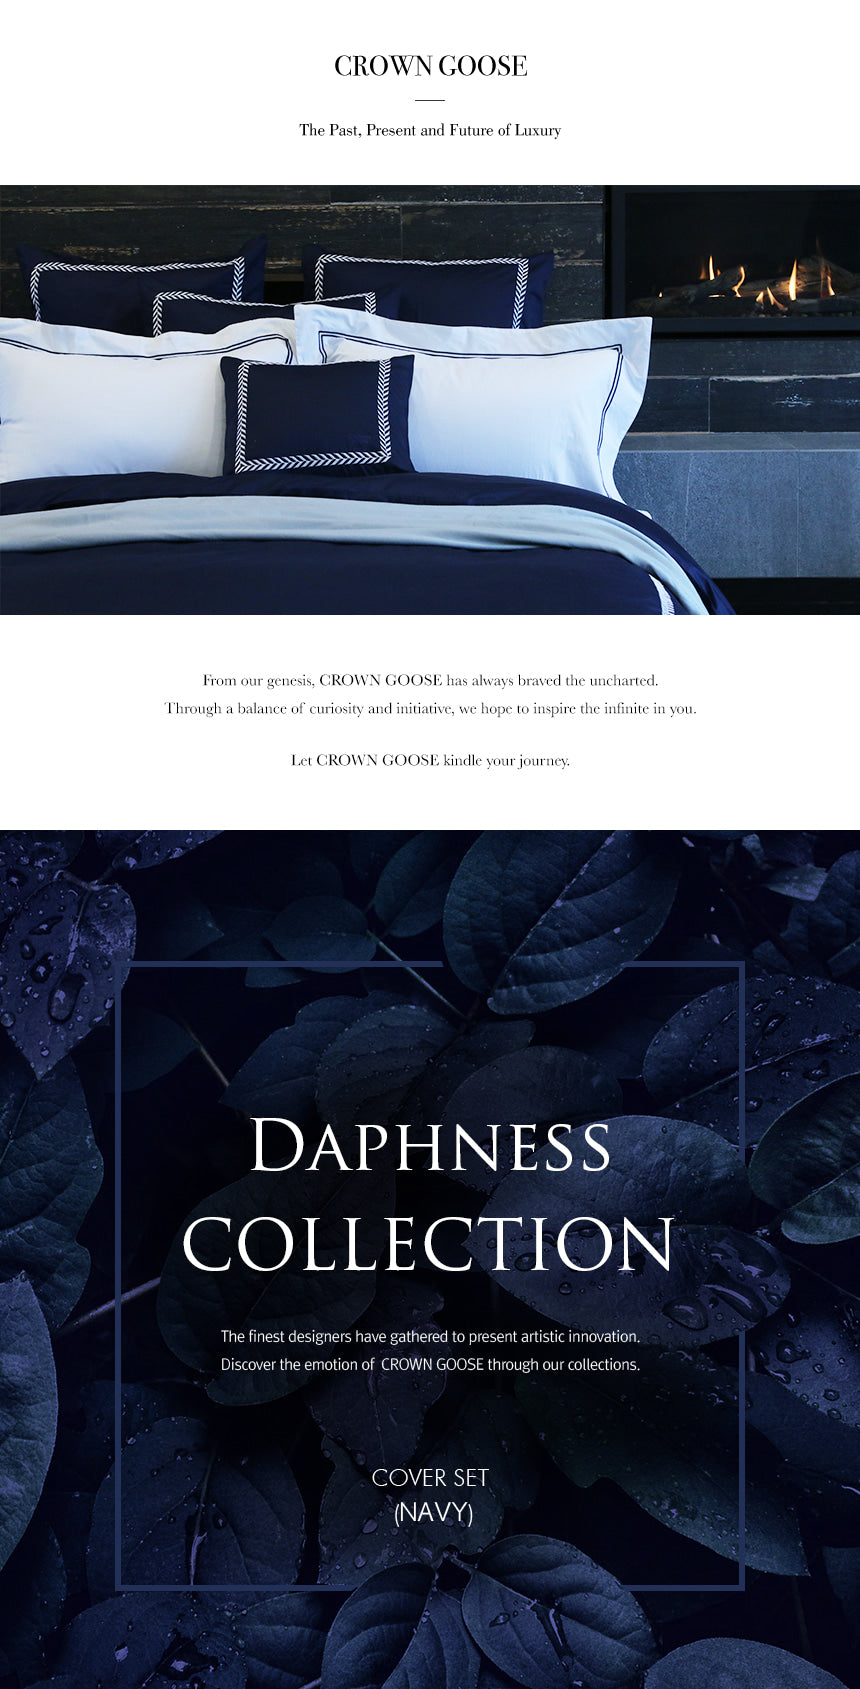 Duvet Cover Set Daphness Collection, Navy